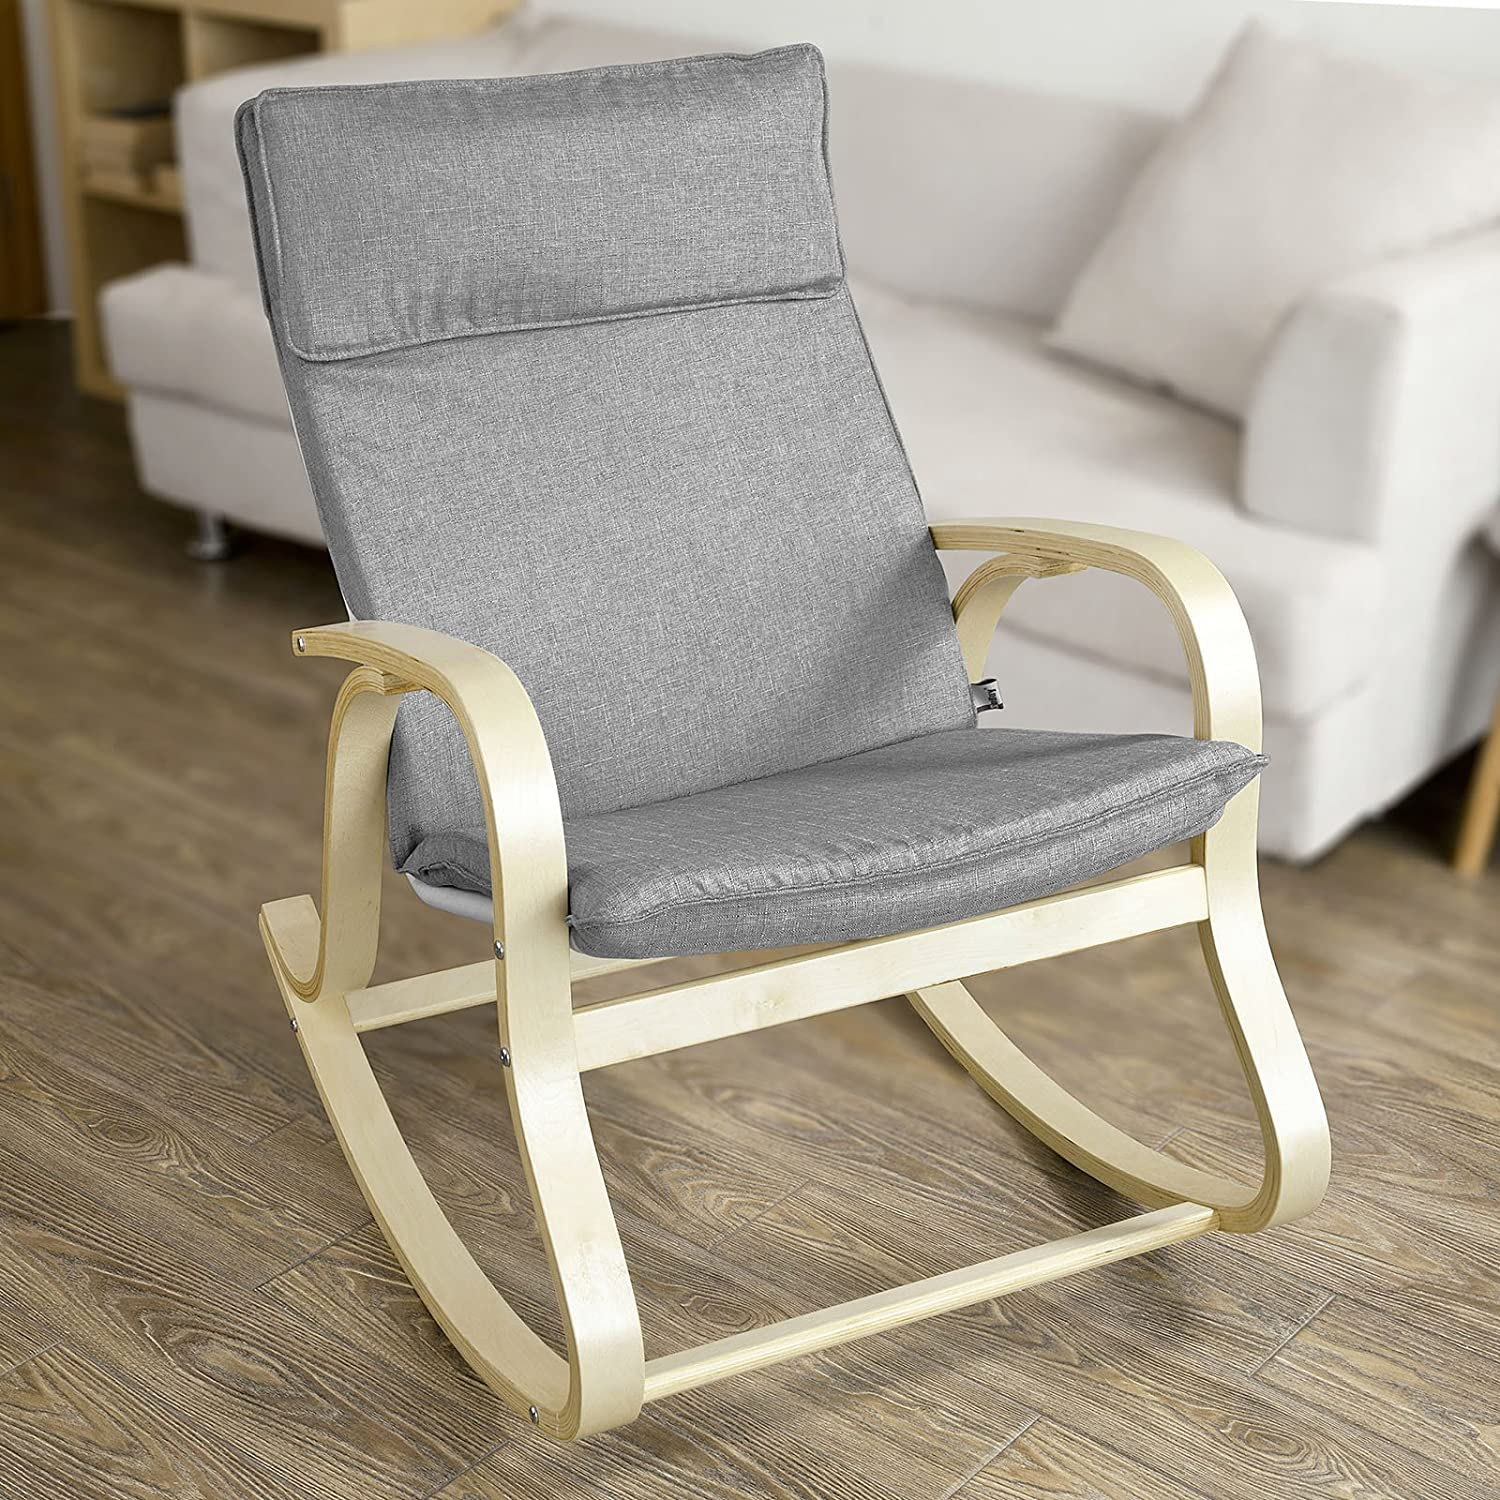 Haotian safety FST15-DG Comfortable Relax Lounge Rocking Manufacturer regenerated product Chair